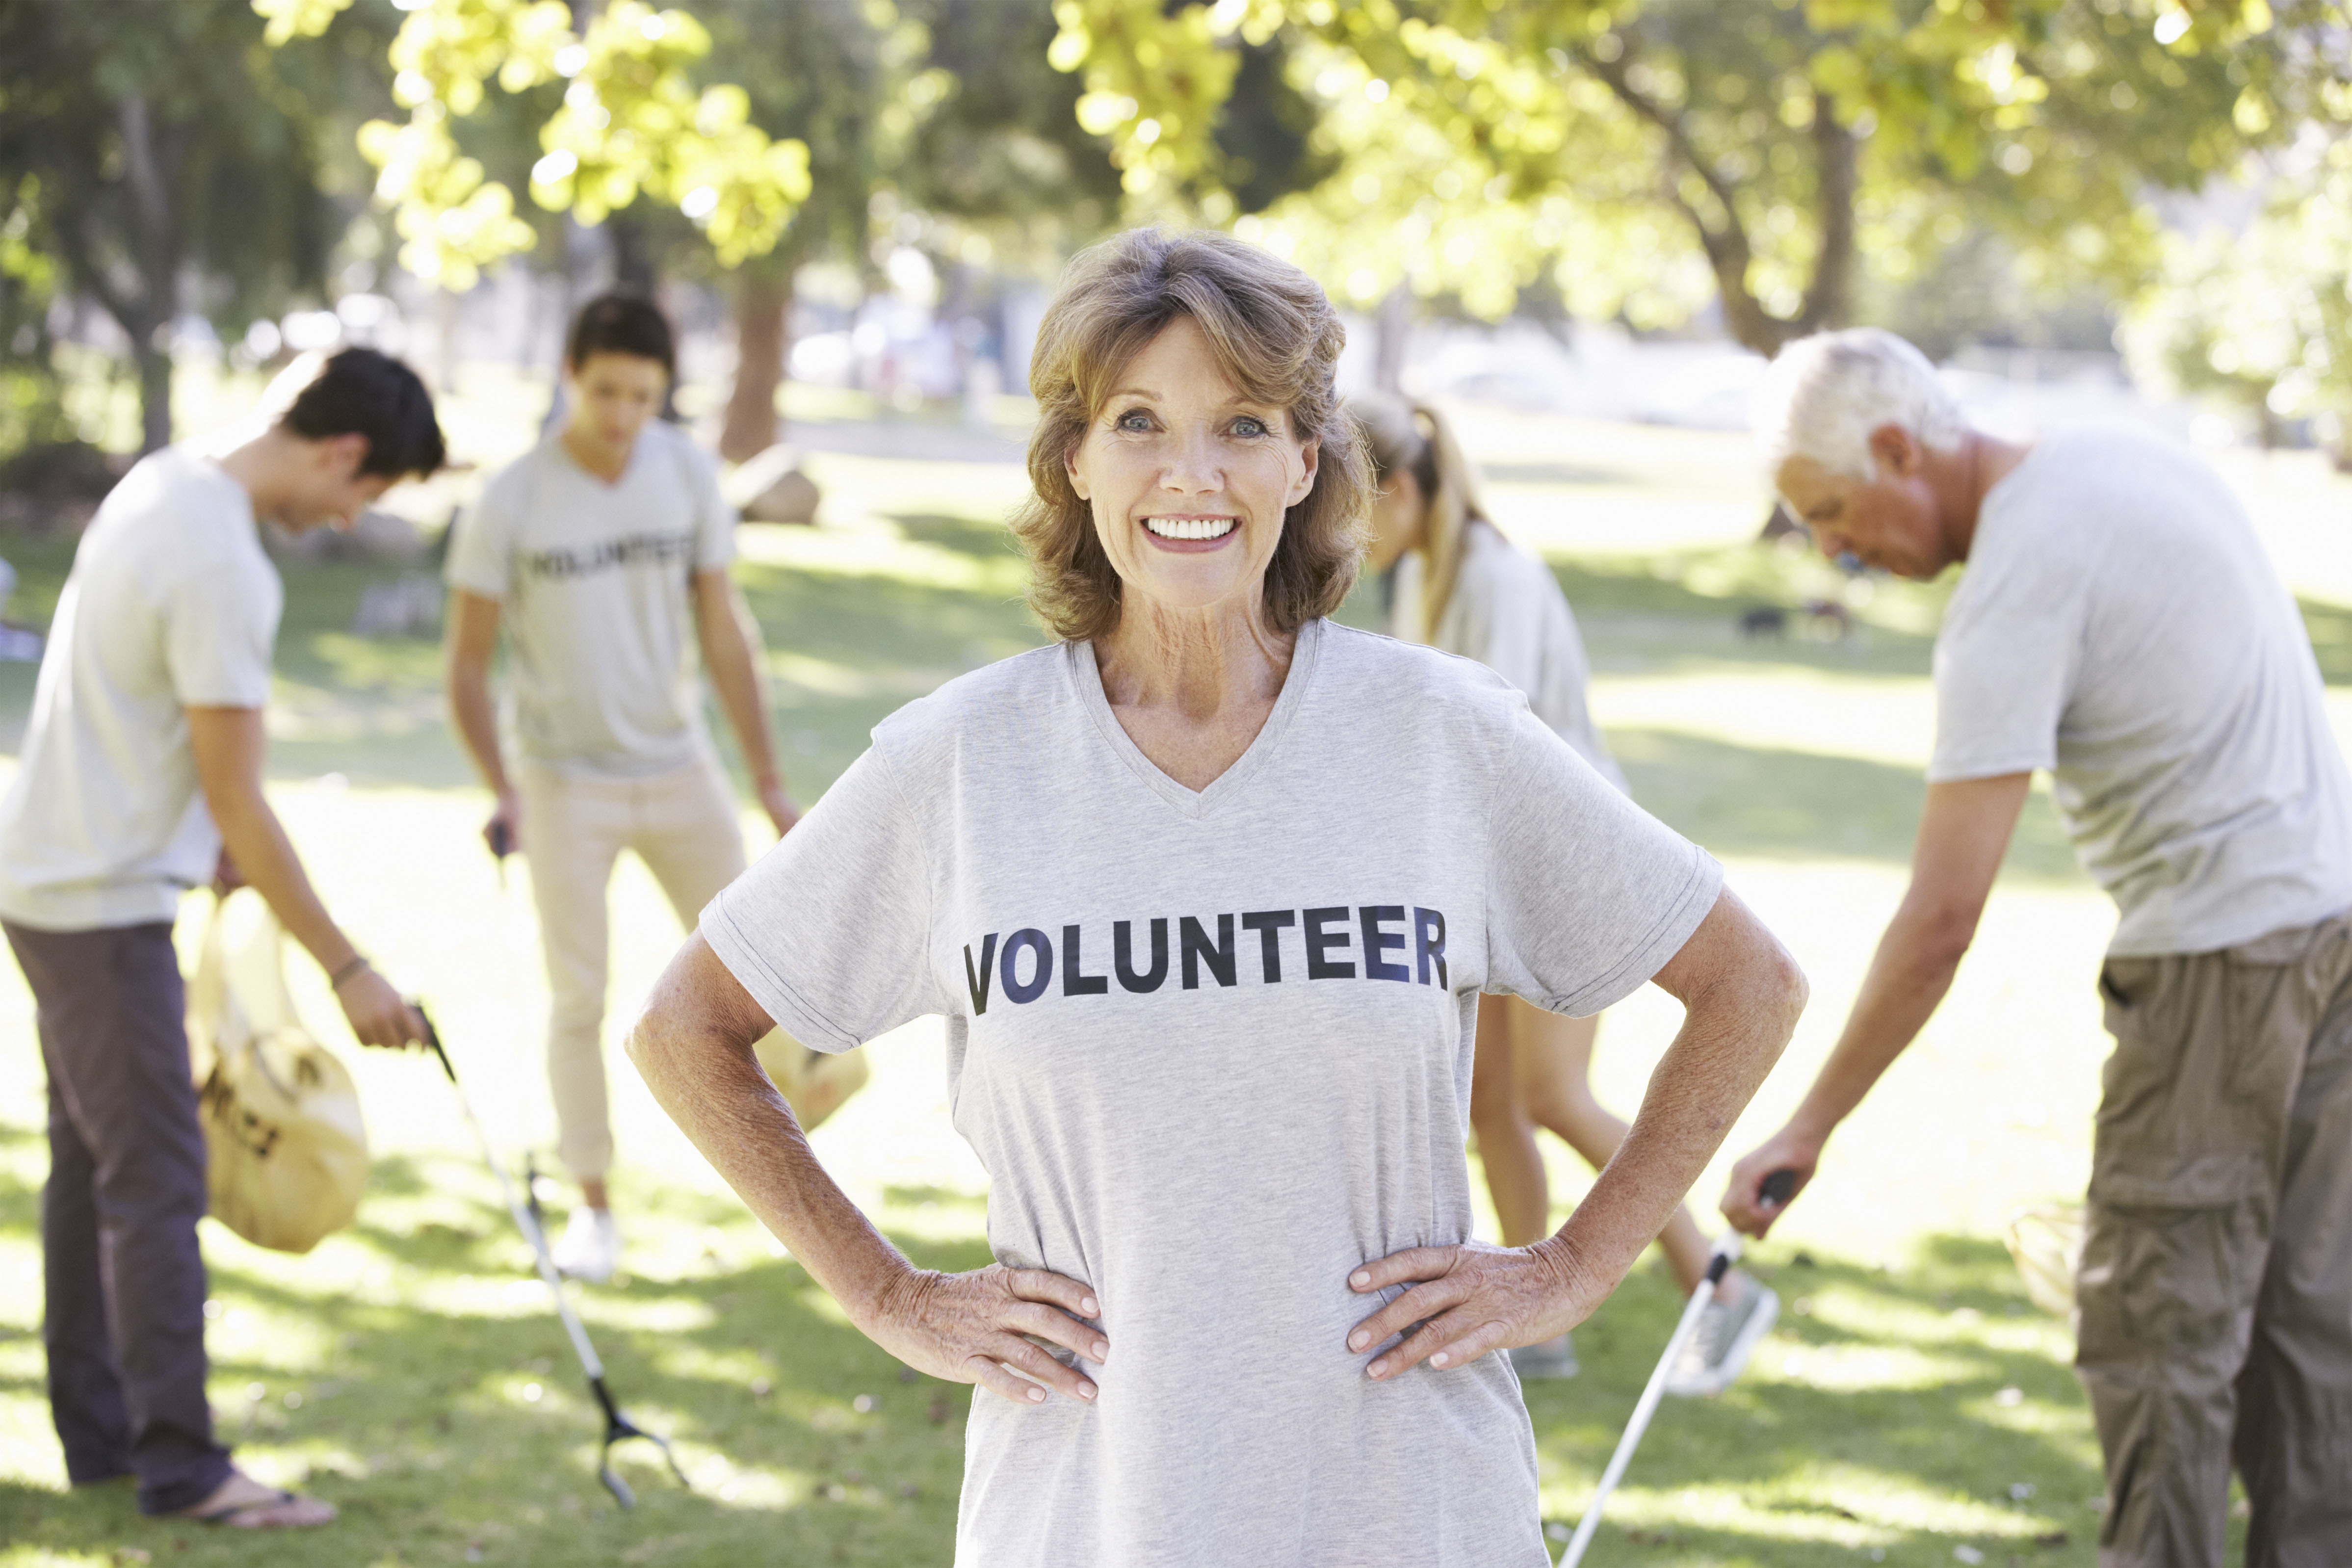 senior woman wearing volunteer shirt